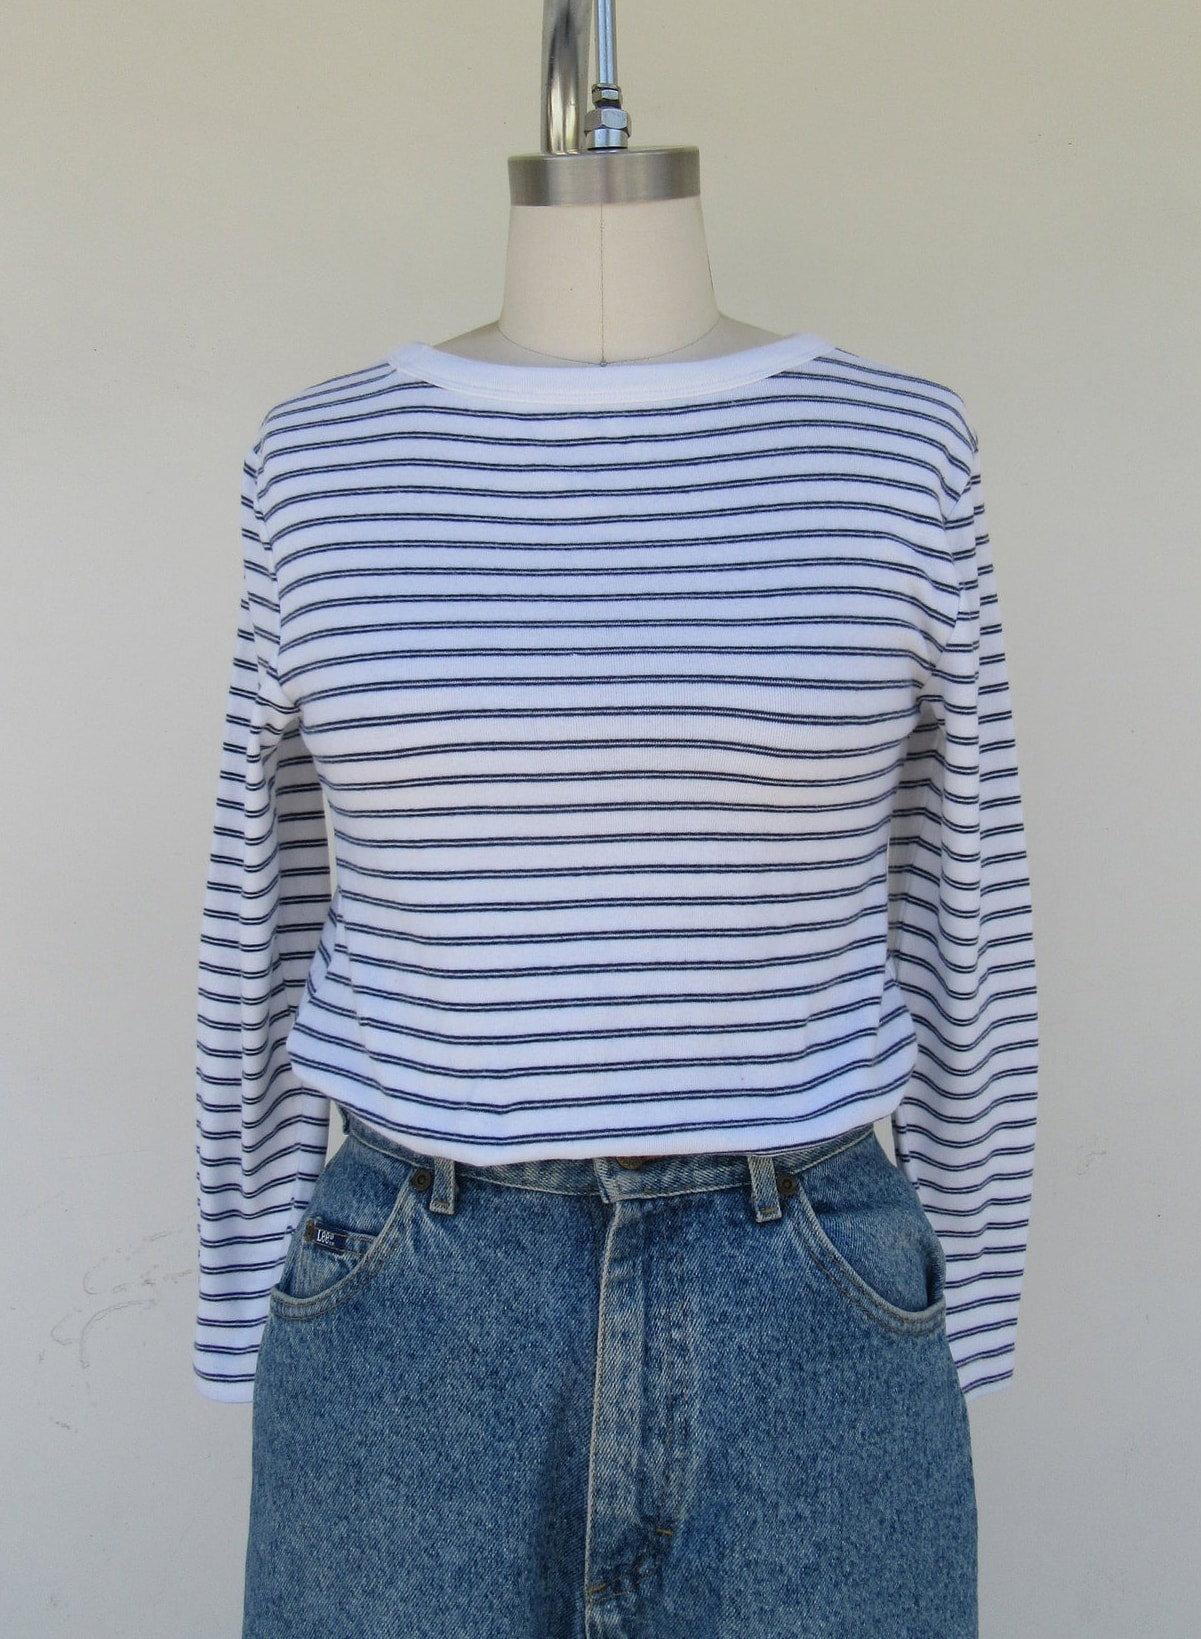 90s White and Navy All Cotton Long Sleeve Striped Tee Shirt | Size S